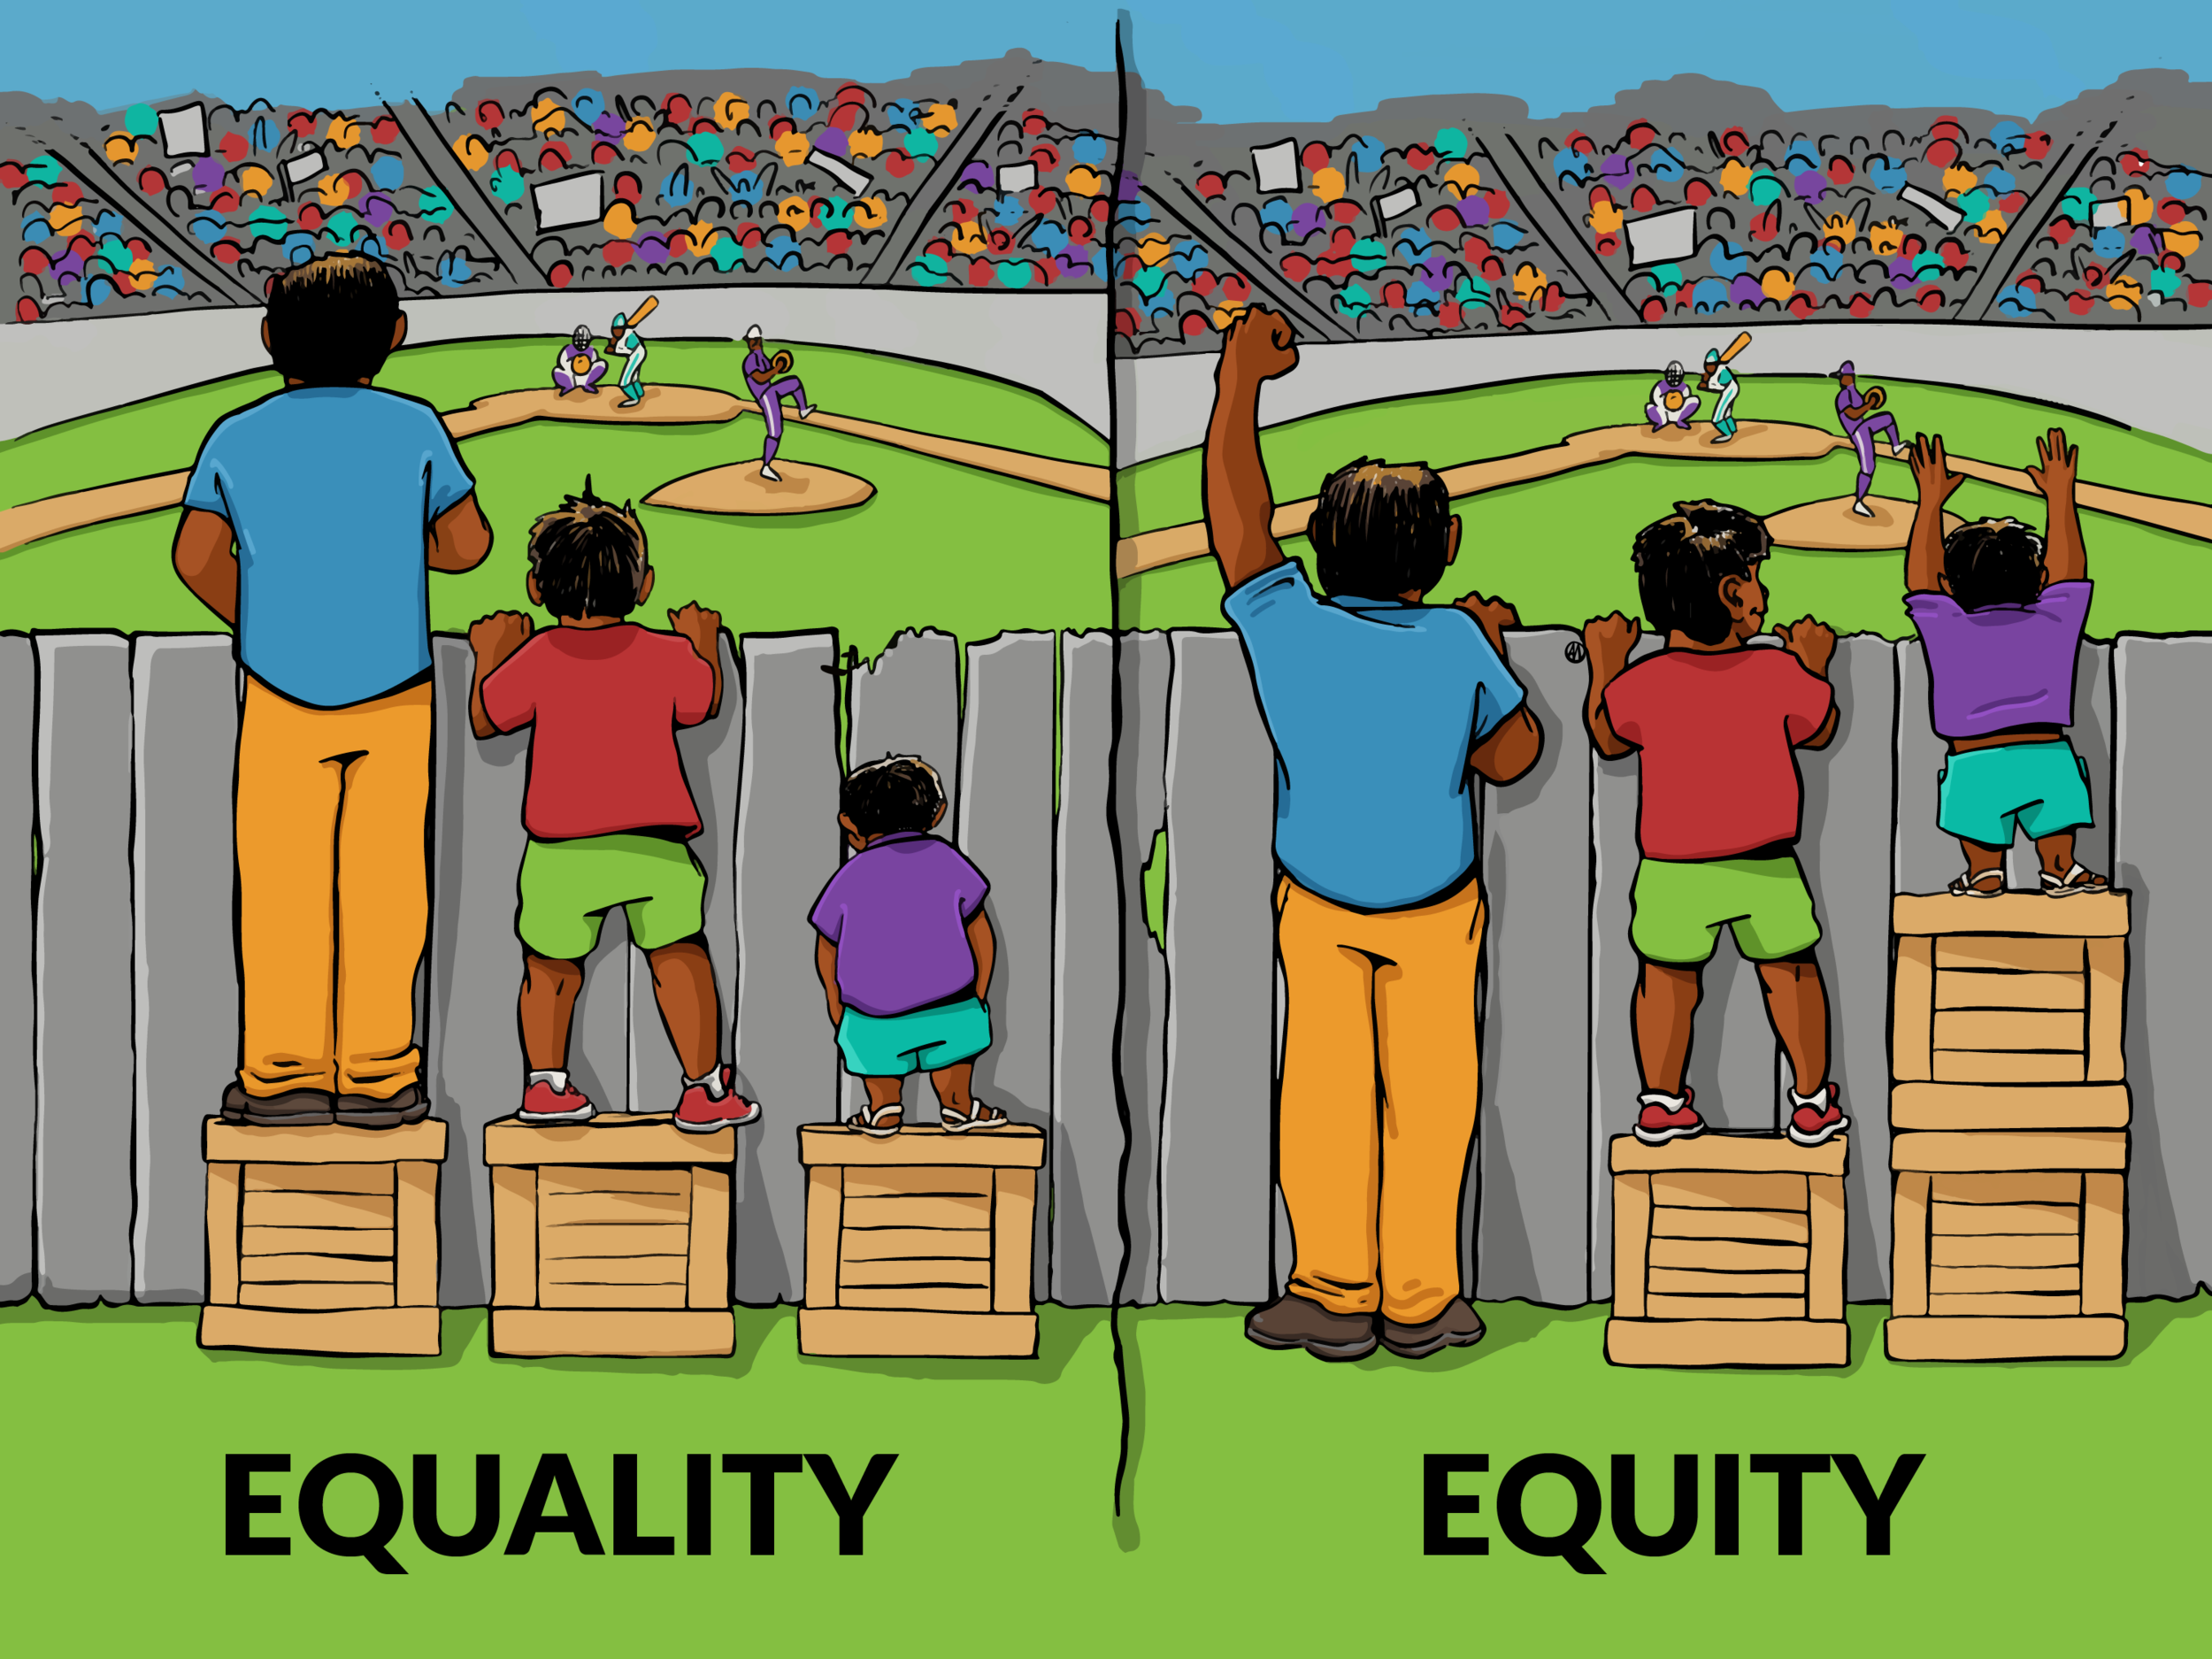 """Illustrating Equity vs. Equality - Image by the Interaction Institute for Social Change 